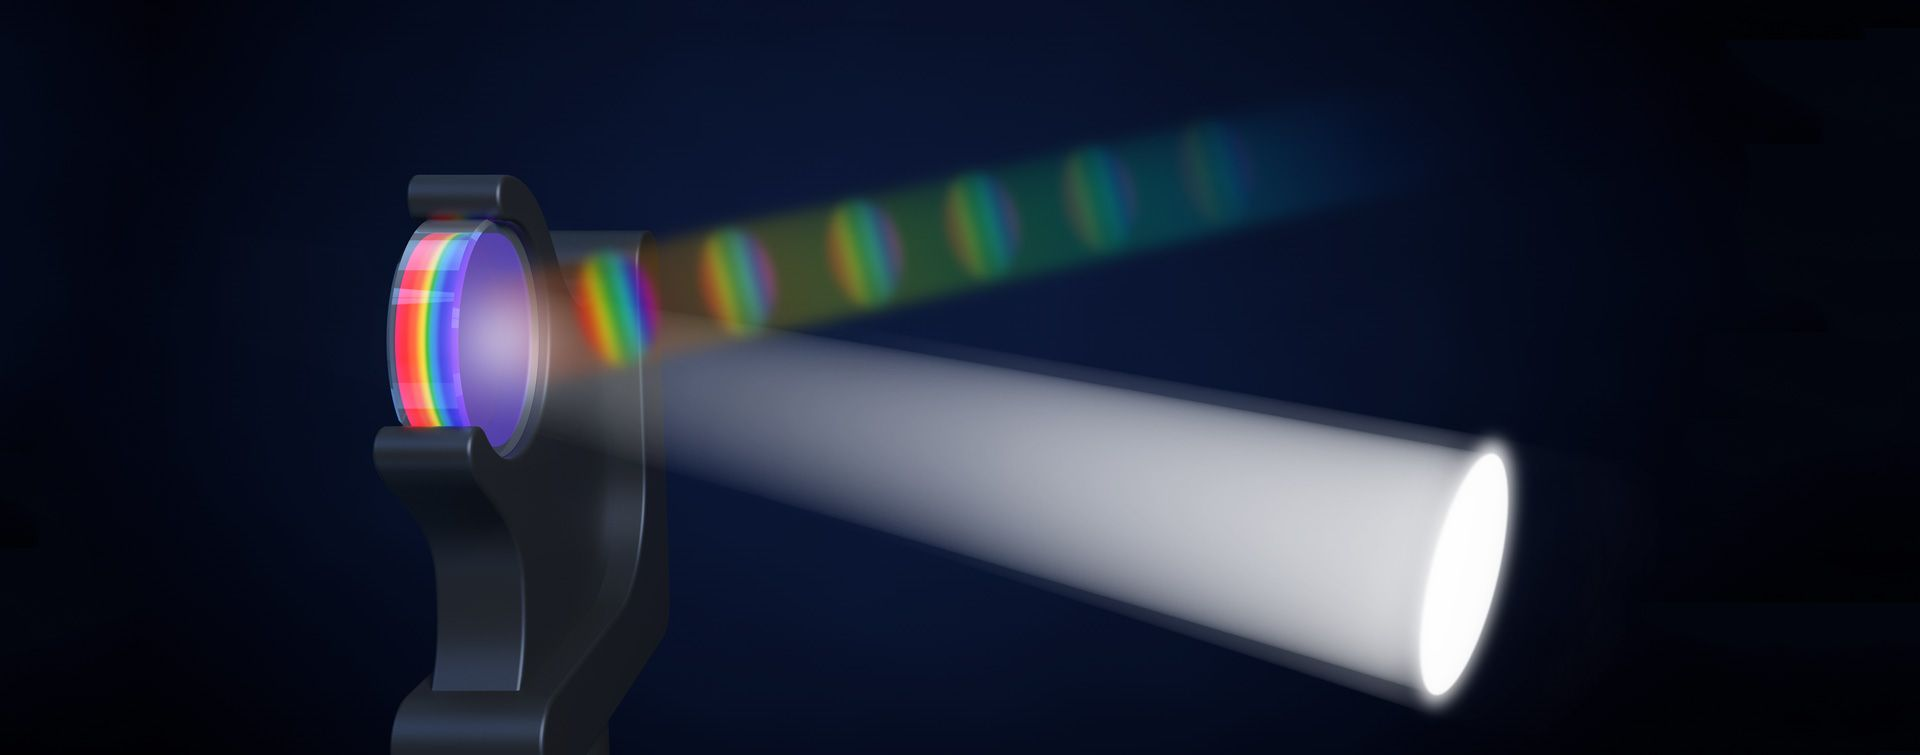 Advanced multilayer optics